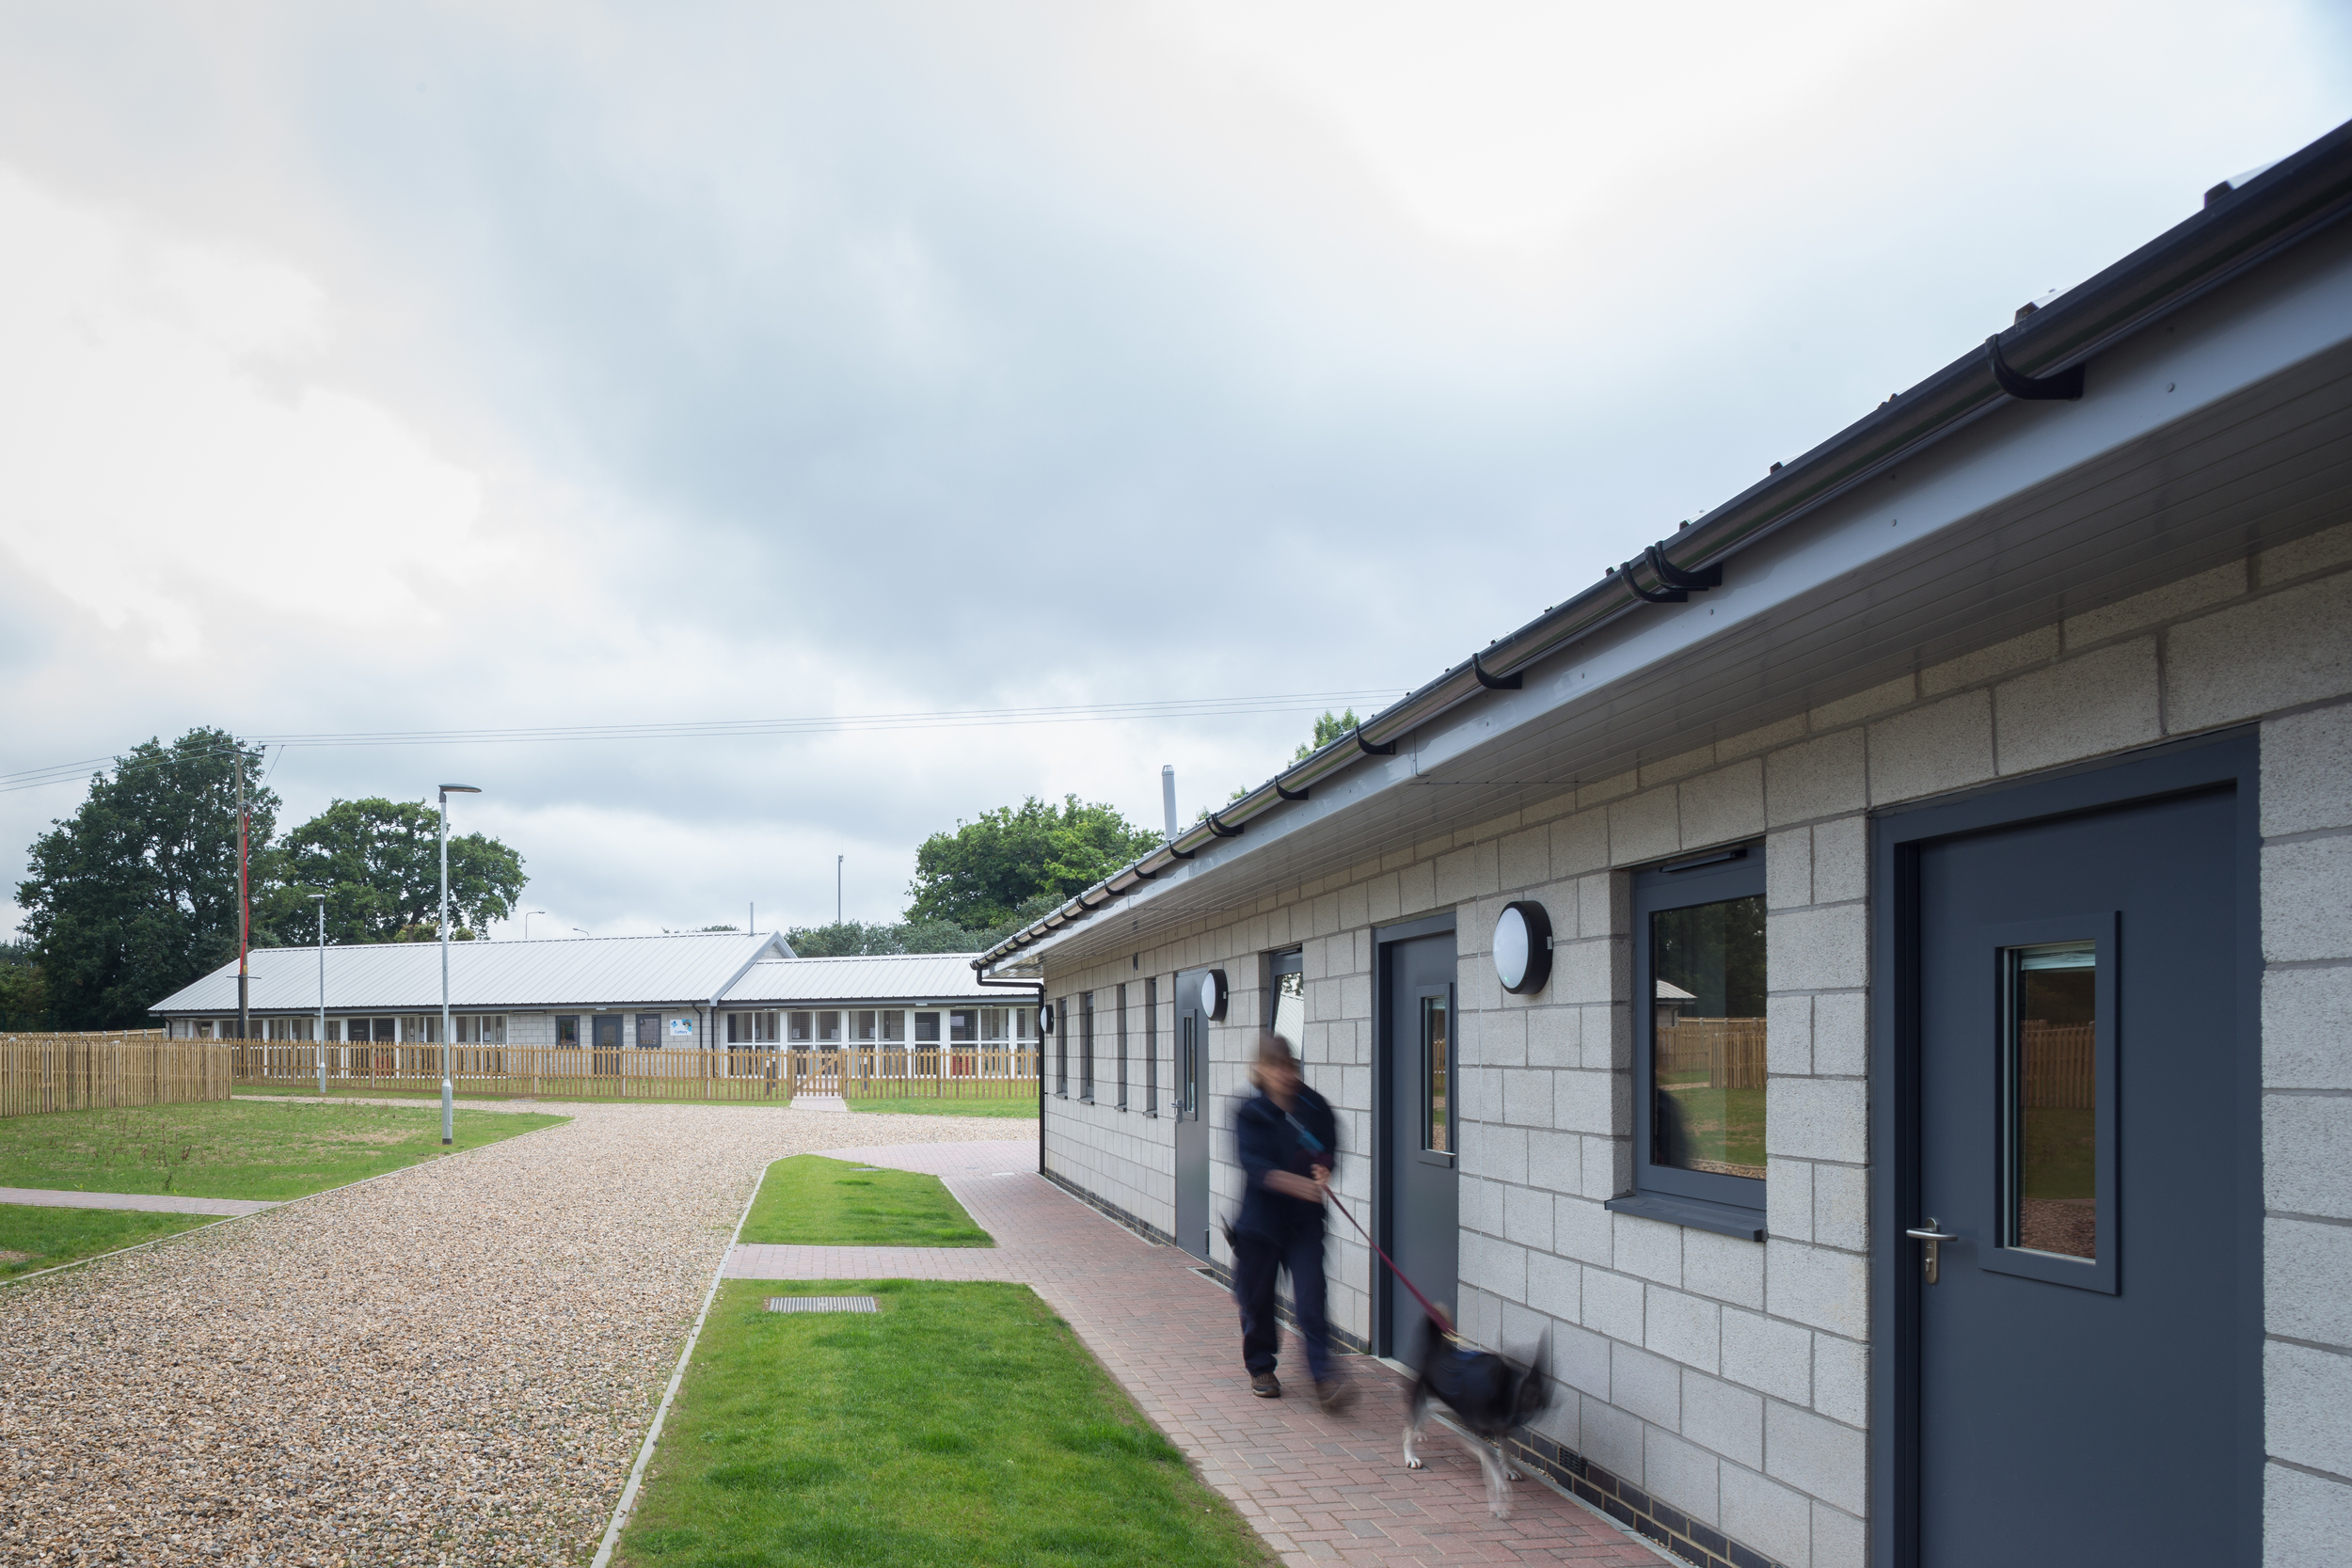 Patrick Allen & Associates Ltd were appointed to design a new animal welfare centre in Wherstead, Ipswich, as the charity needed to relocate to a larger premises.